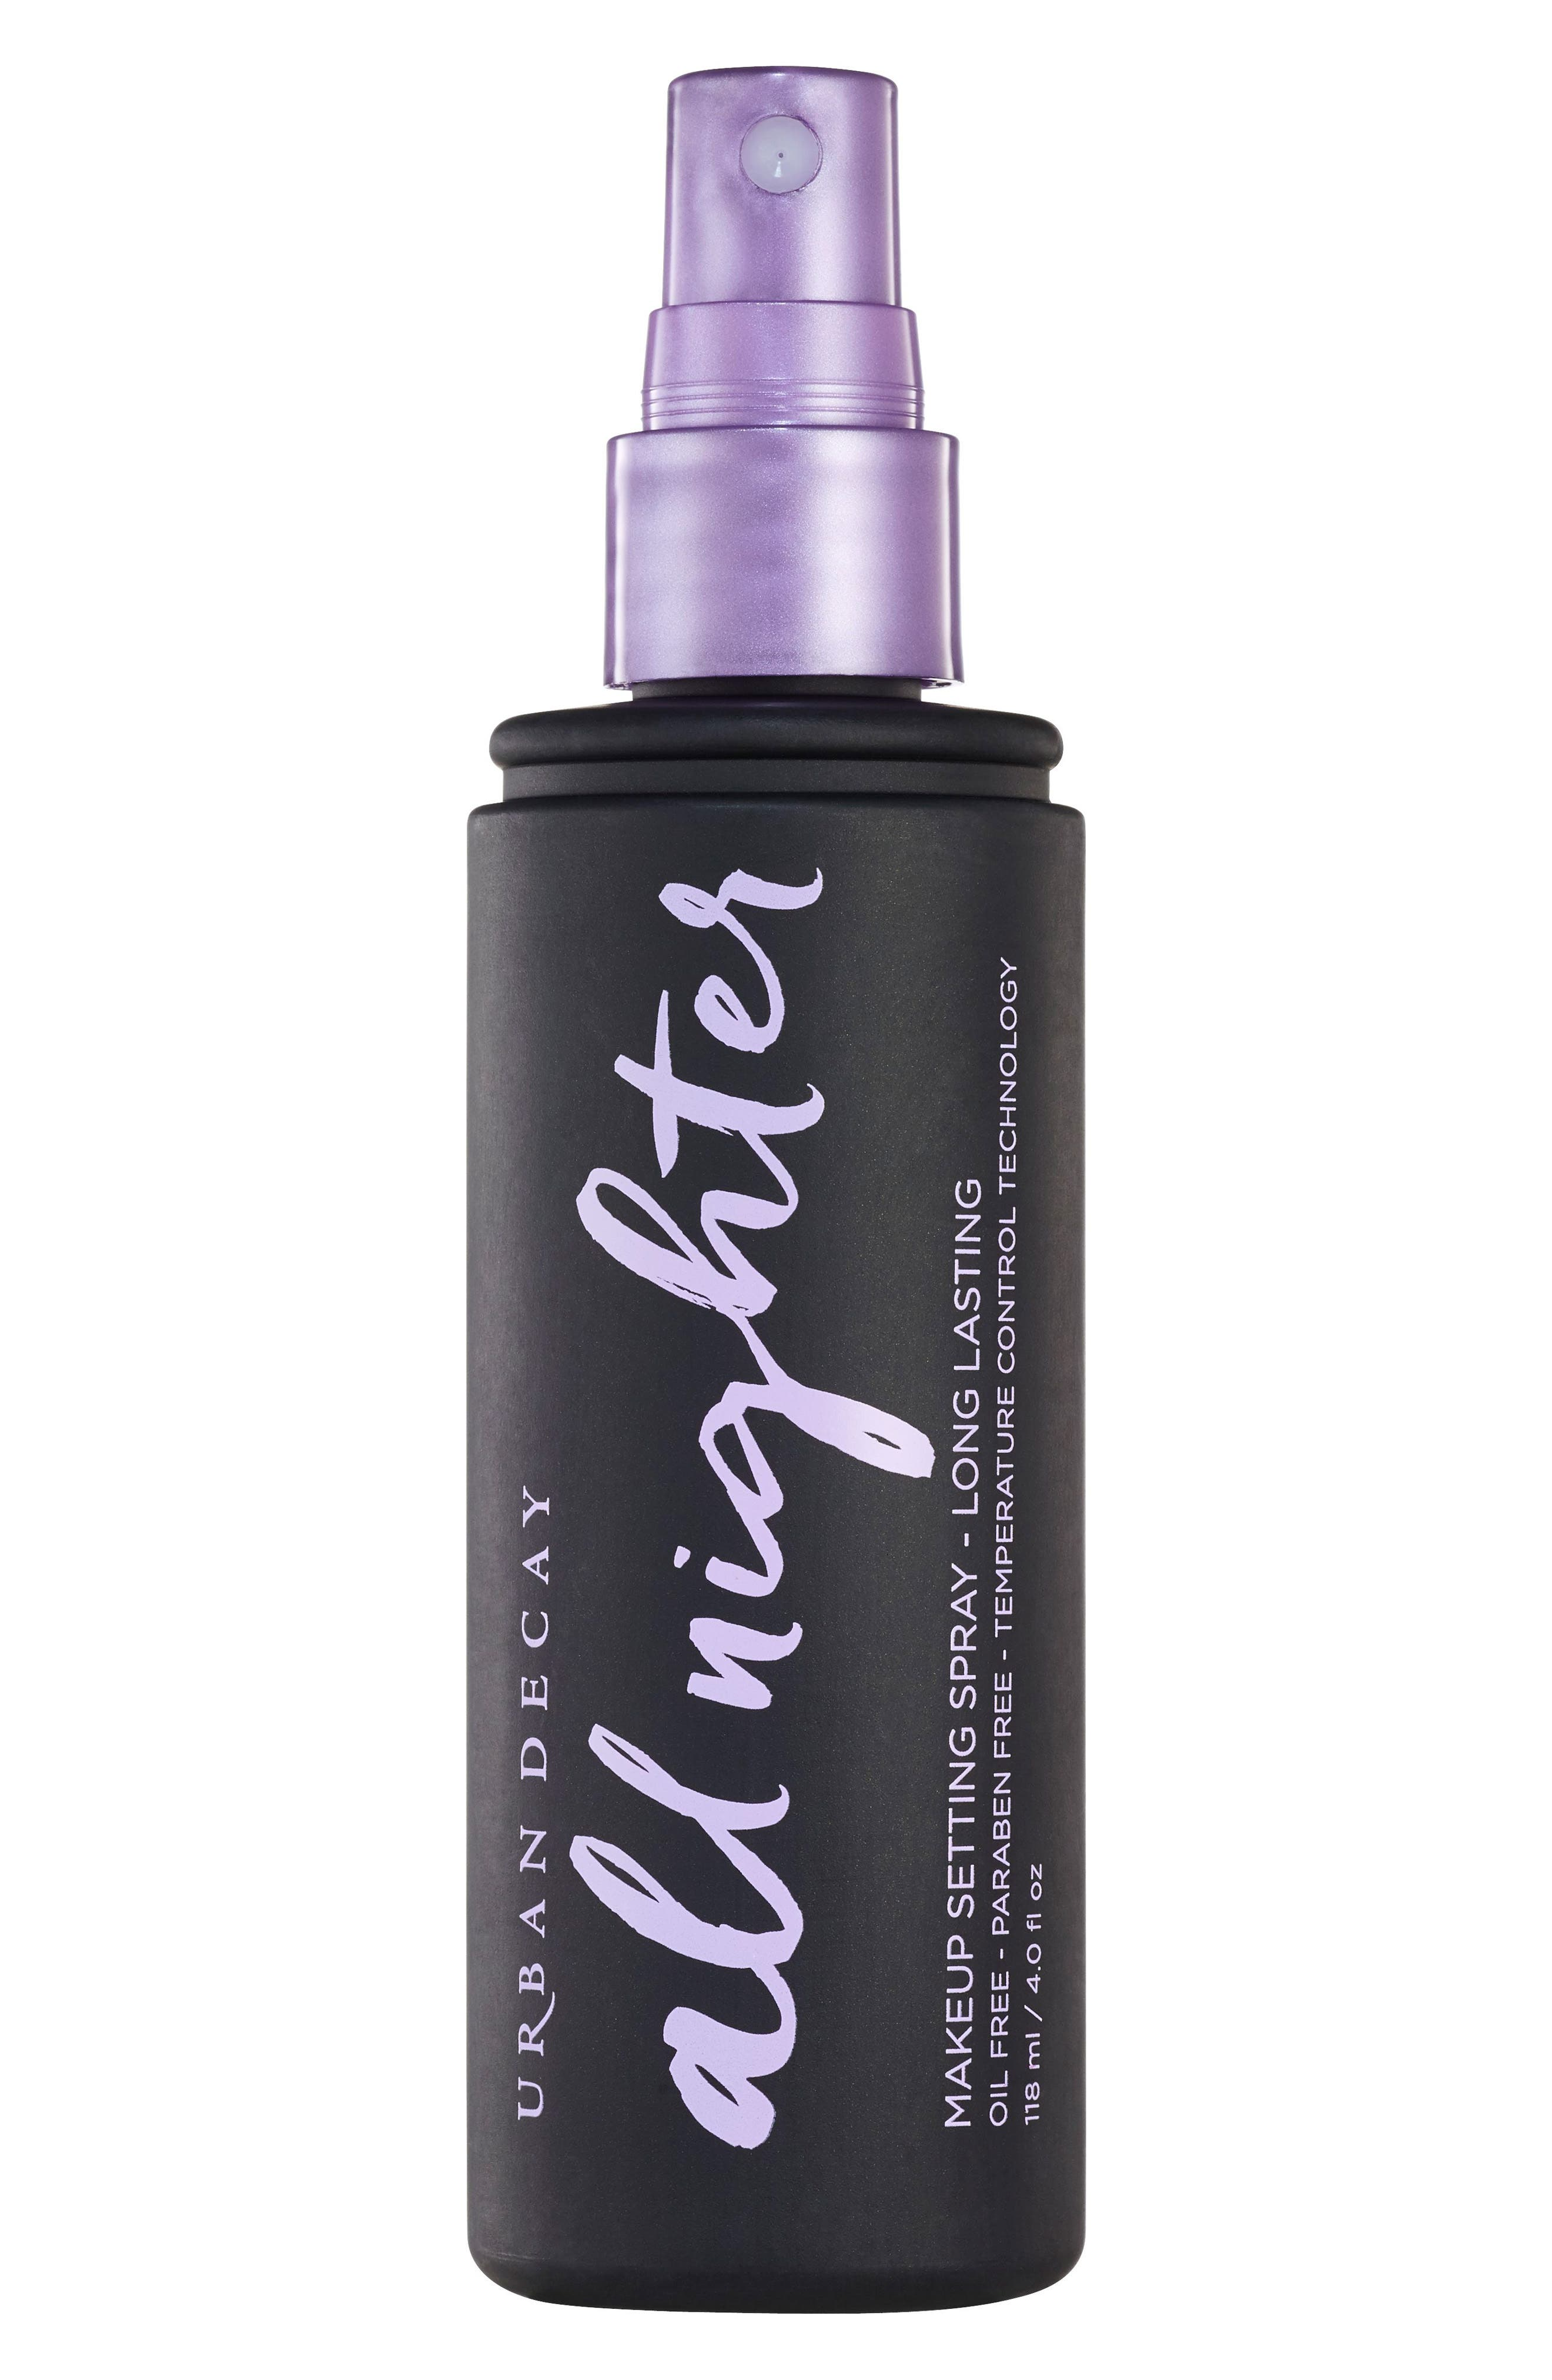 All Nighter Long-Lasting Makeup Setting Spray,                             Alternate thumbnail 2, color,                             000